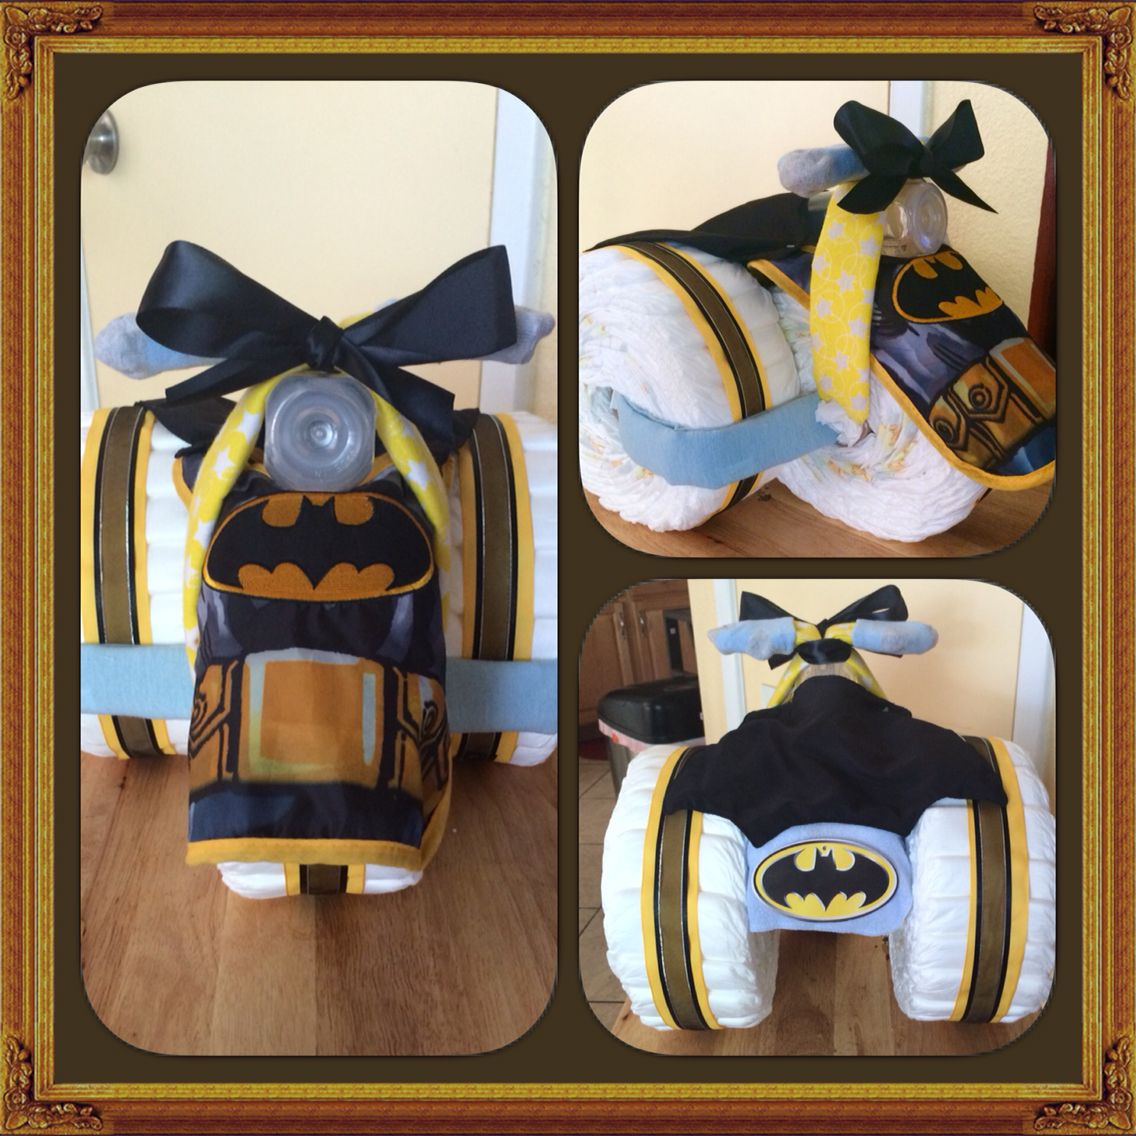 batman diaper cake my diaper cakes pinterest